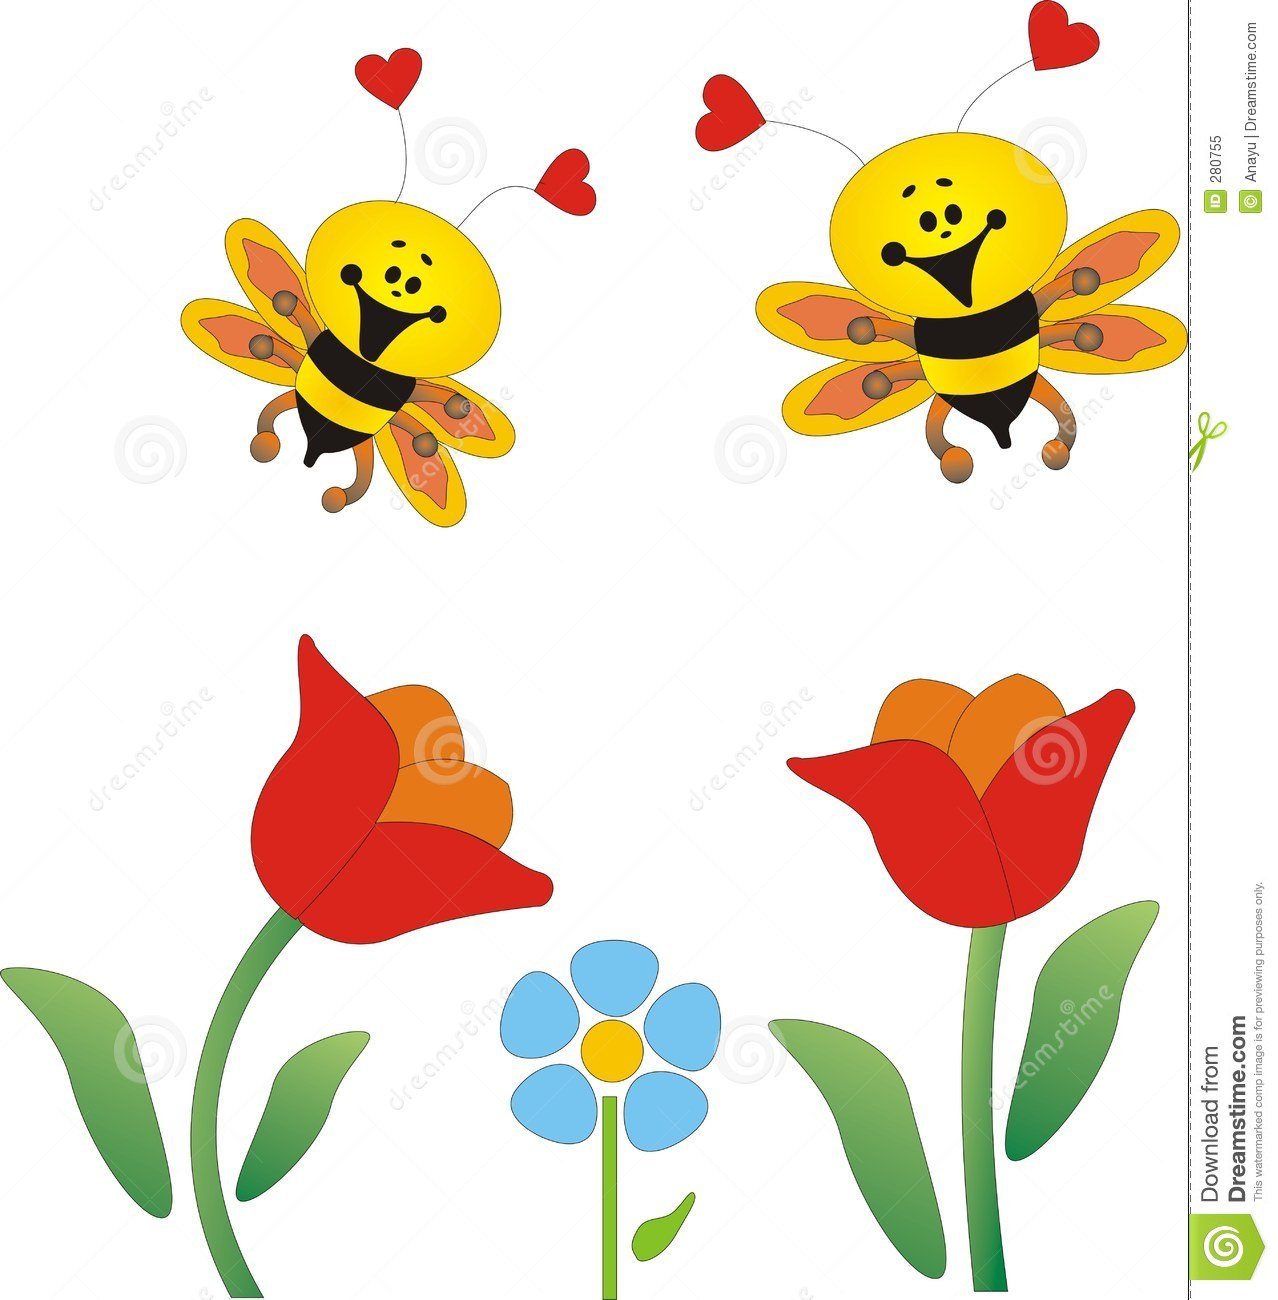 Bees clipart bee flower Royalty collection And Flowers with